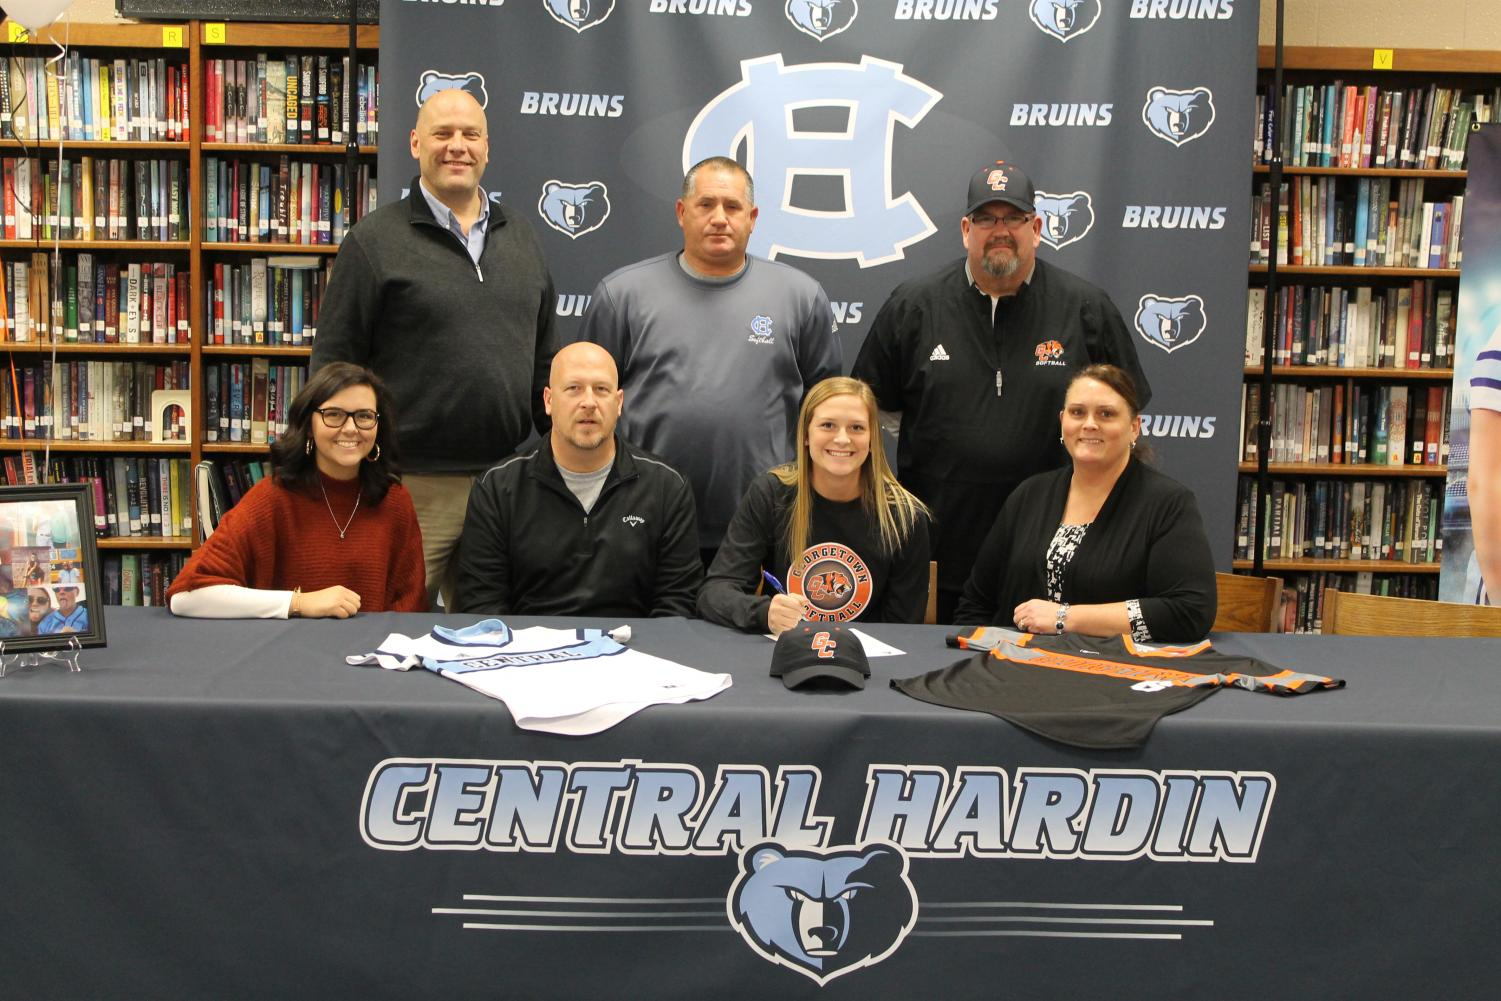 Peyton Beger signs with Georgetown College Softball on Nov. 28, surrounded by Jordin and Andy Beger (left) and Lori Beger (right). Back row: principal Tim Isaacs, CHHS coach Jamie Goodman, and Georgetown coach Thomas Thornton.